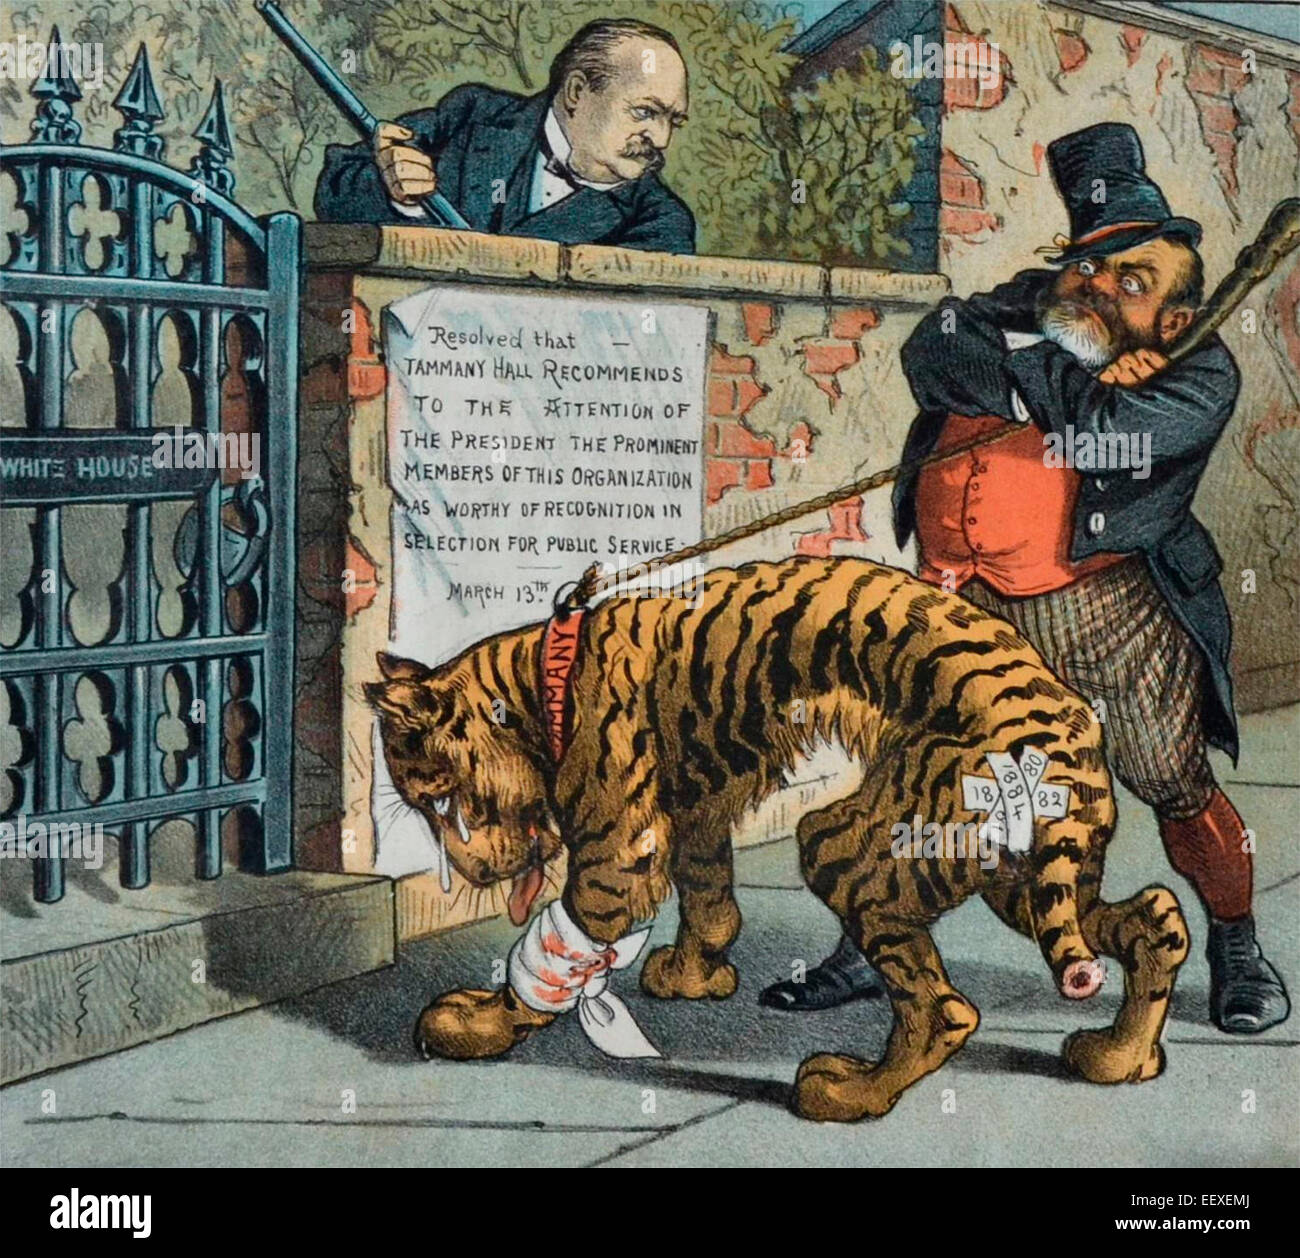 Tammany Tiger Visits President Grover Cleveland at the White House. 1885 political cartoon - Stock Image